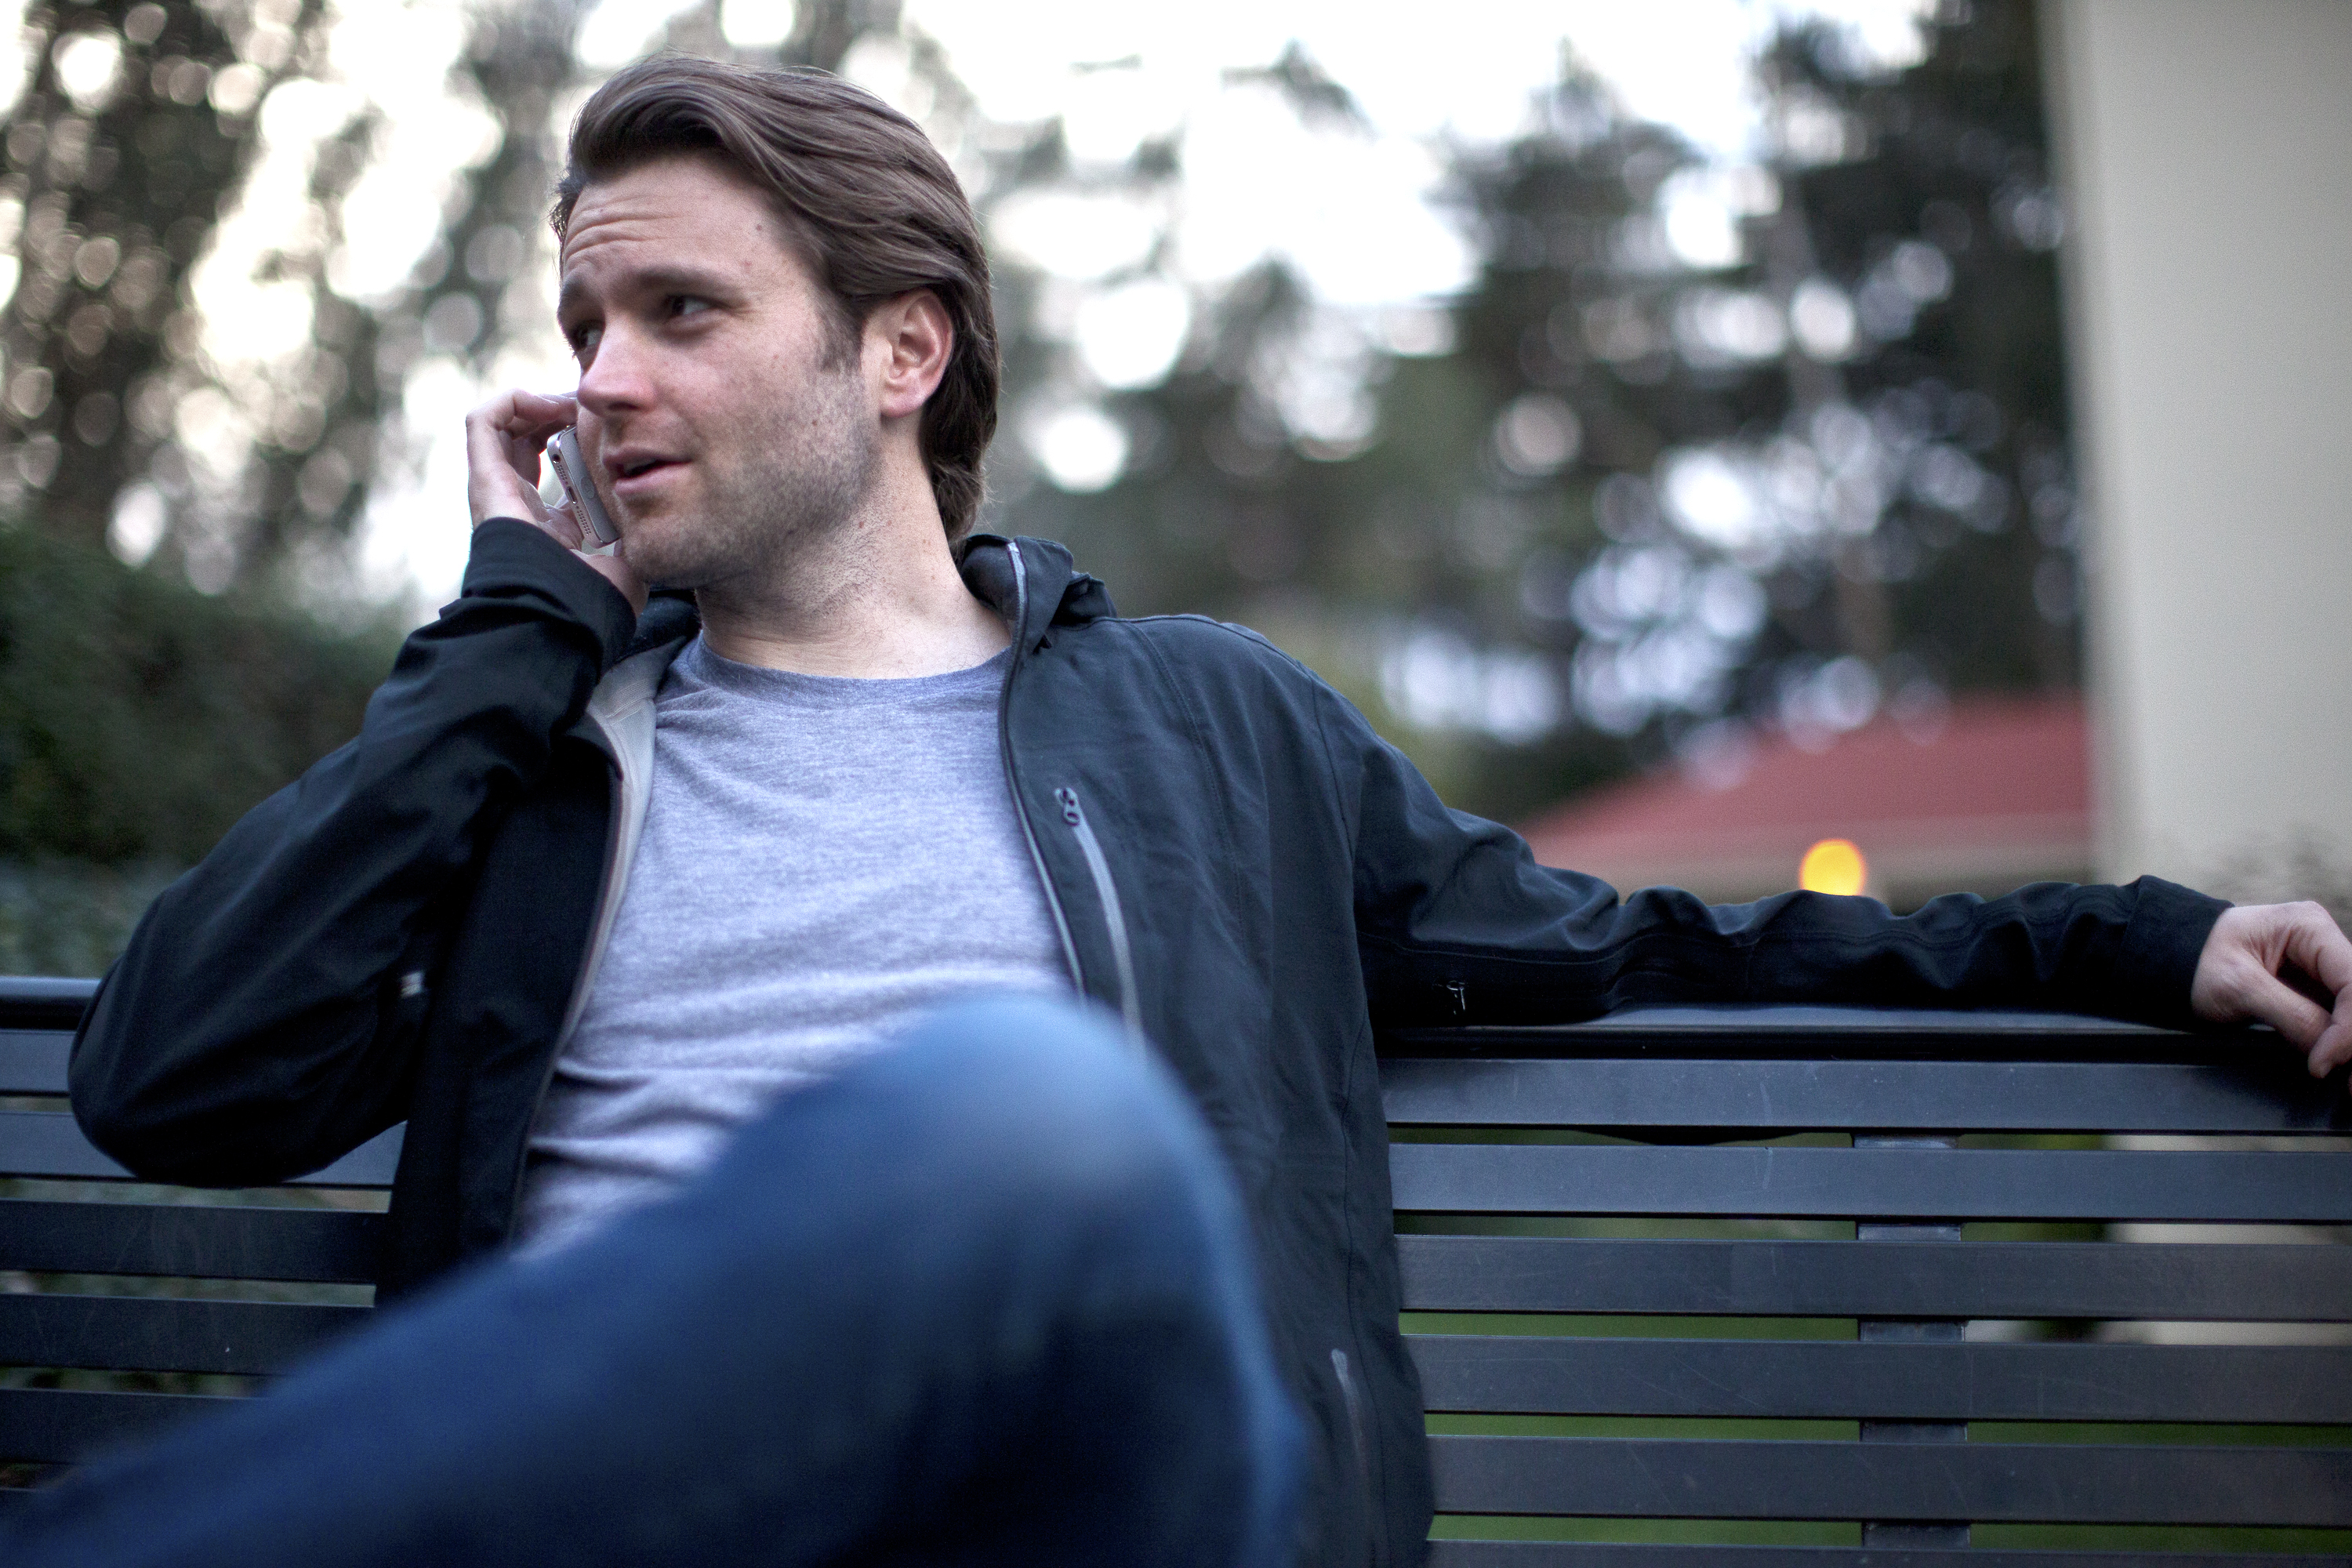 Kyle Kirchhoff, CEO of Leap Transit, sitting on a bench in the Presidio, San Francisco.